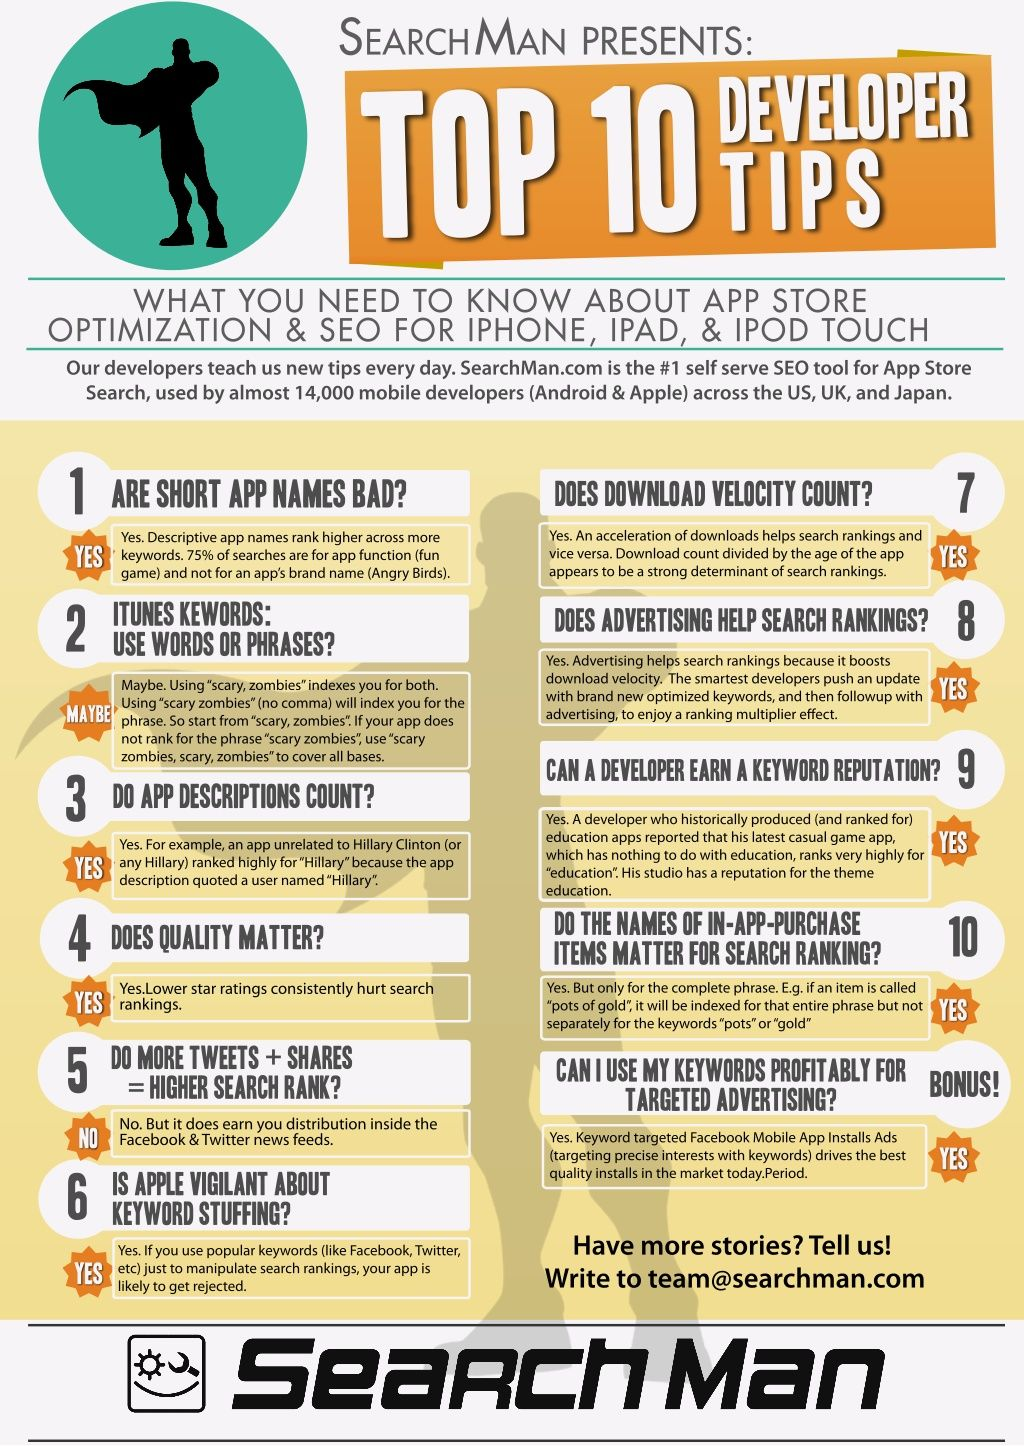 App Store Optimization 10 Tipps infographic